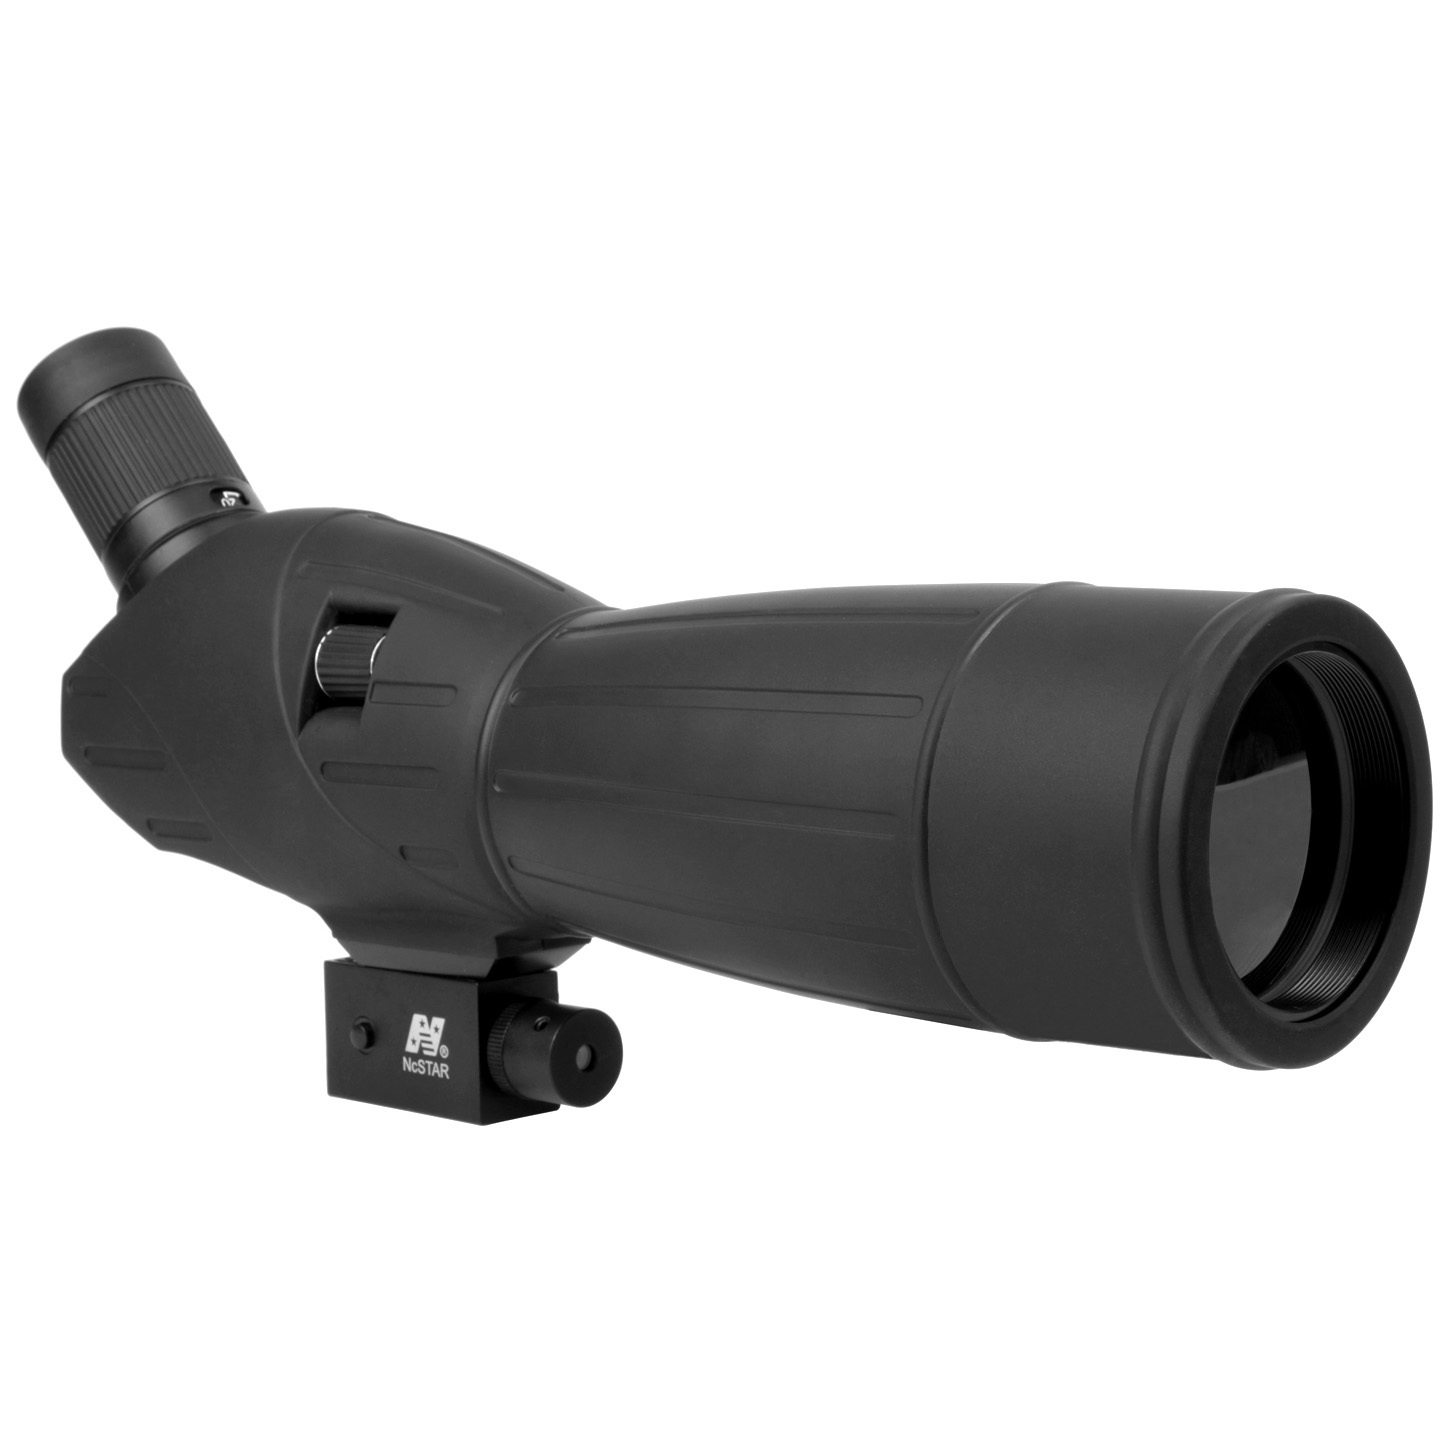 "NcSTAR 20-60x60mm Spotting Scope with Tripod and Laser gets you up close and personal with nature and targets, skip the aiming hassles! Pull in the farthest sites with ease! The NcSTAR 20-60x60mm Spotting Scope with Tripod and Laser is your passport to a world of up-close, eye-opening encounters! With a high-quality, precision-ground multi-coated lens for clear and crisp images and the added bonus of an adjustable laser beam to give you a reference point for easier spotting, it's ideal for hunting, bird watching or just getting a better view of nature's beauty. And you get it all for an awesomely affordable price... what a score!ZOOM in for a closer look:Powerful 20-60X zoom capability brings you incredible detail Light-drinking 60mm objective gives bright picture even in low light... built-in slide-out sunshade gives you the perfect amount of light for any conditions Precision-ground, multi-coated lenses for clear, crisp images F.O.V @ 100 yds.: 96-48 ft. 2.5 mm exit pupil @ 20X Red laser built in to the body takes the hassle out of sighting External quick-focus knob Protective rubber armor outer coating Nitrogen-filled and o-ring sealed for optimal performance when the weather's mood is less than sunny Includes objective lens cap Tripod and soft carry case included Approx. 14"" l, 29 ozs. - $79.99"